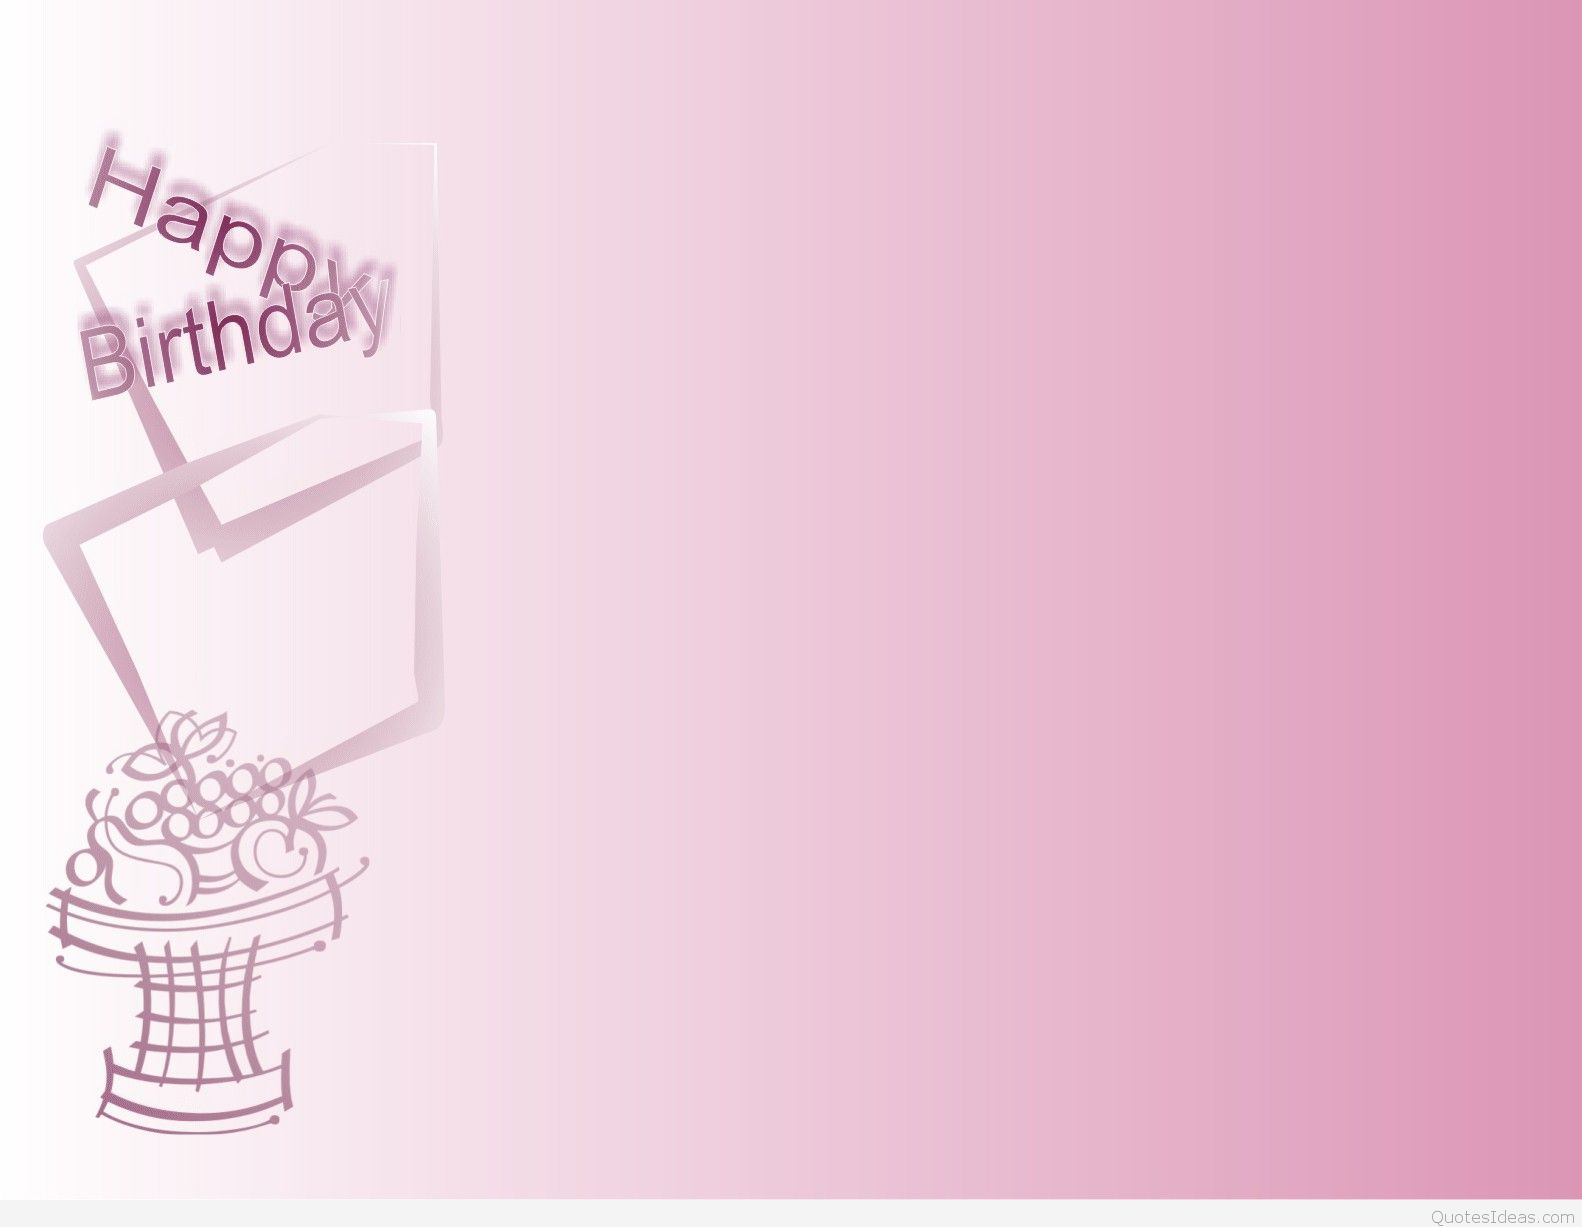 birthday message background ; Happy-Birthday-Pink-Background-Wallpaper-Desktop